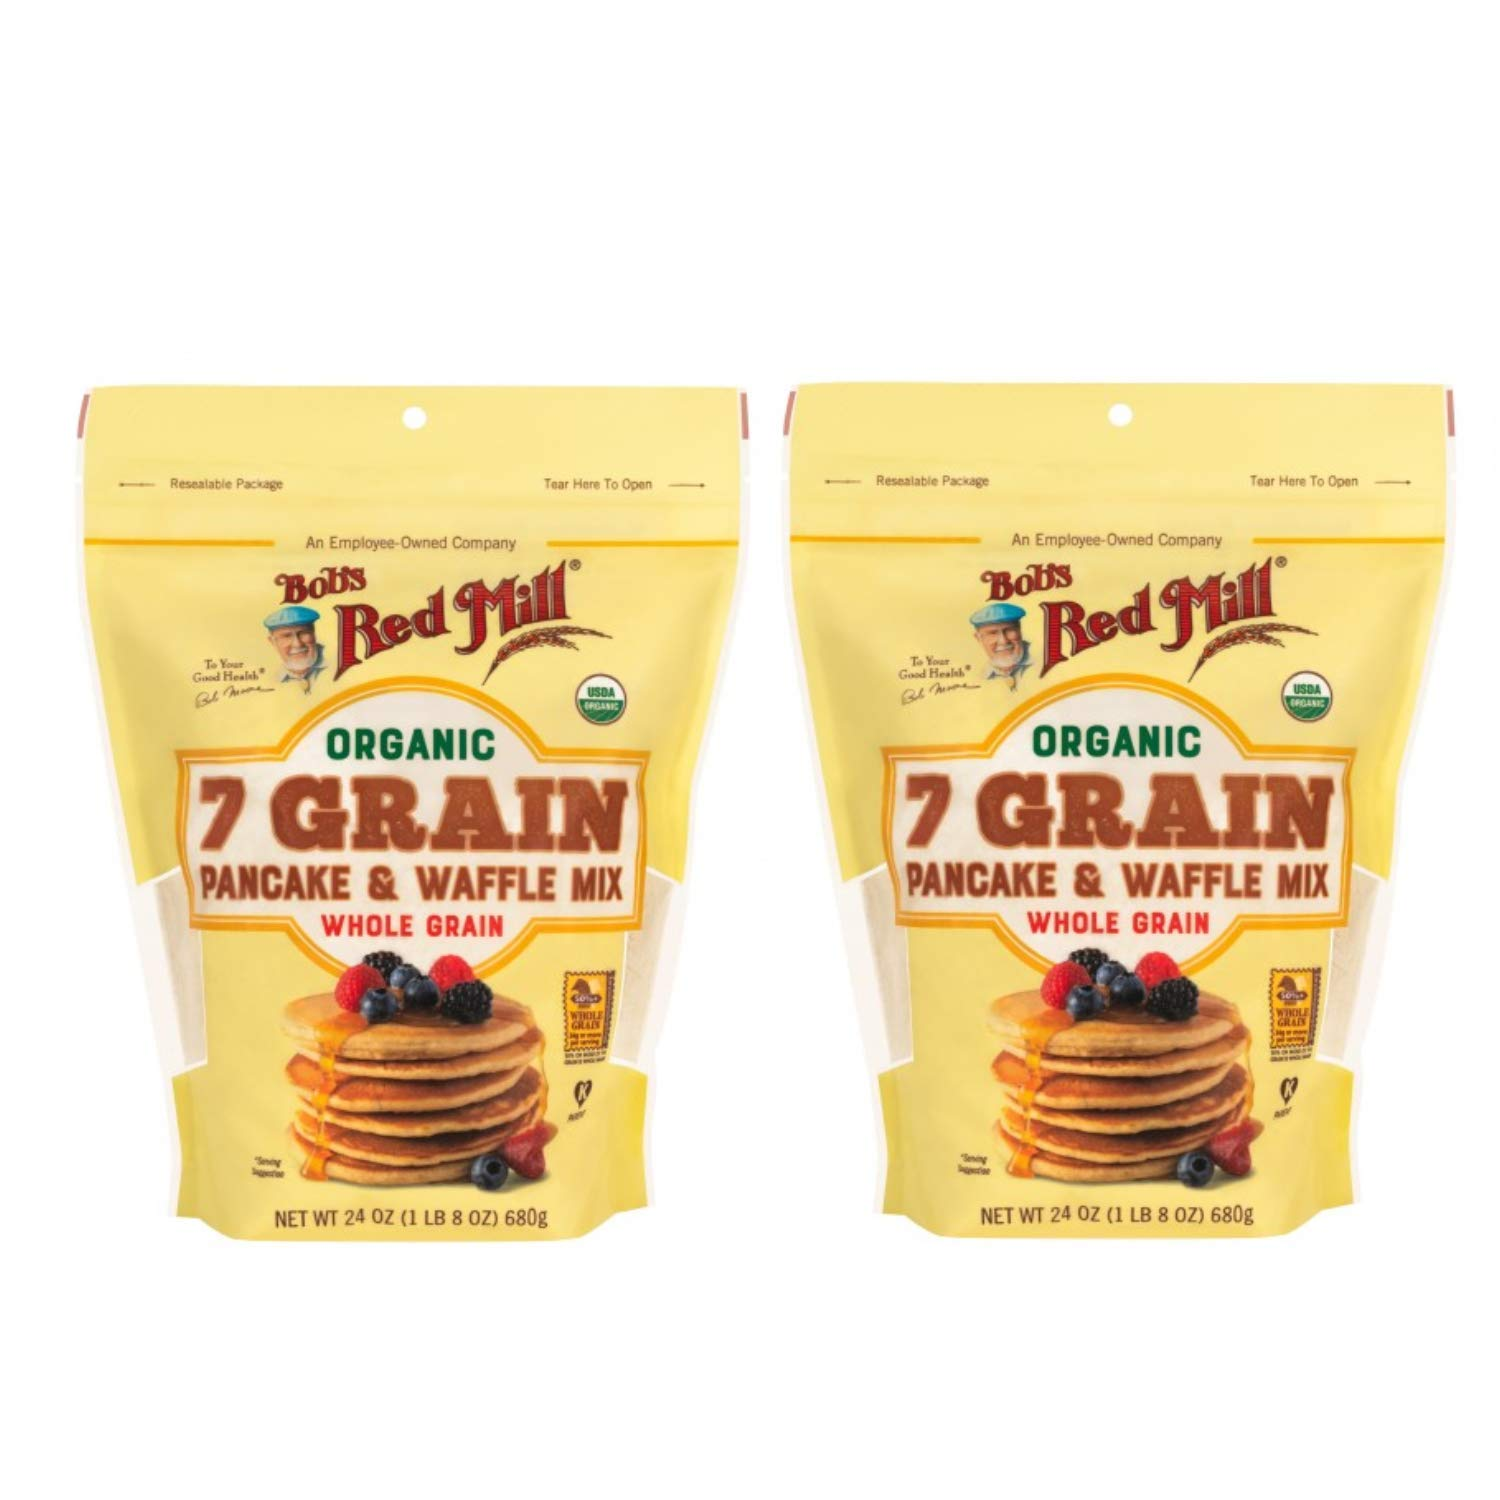 Bob's Red Mill Organic 7 Grain Pancake & Waffle Mix 24 oz (Two Pack) - Multigrain Organic Pancake and Waffle Mix - Double Pack Pancake and Waffle Mix (Two 24 oz resealable bags)